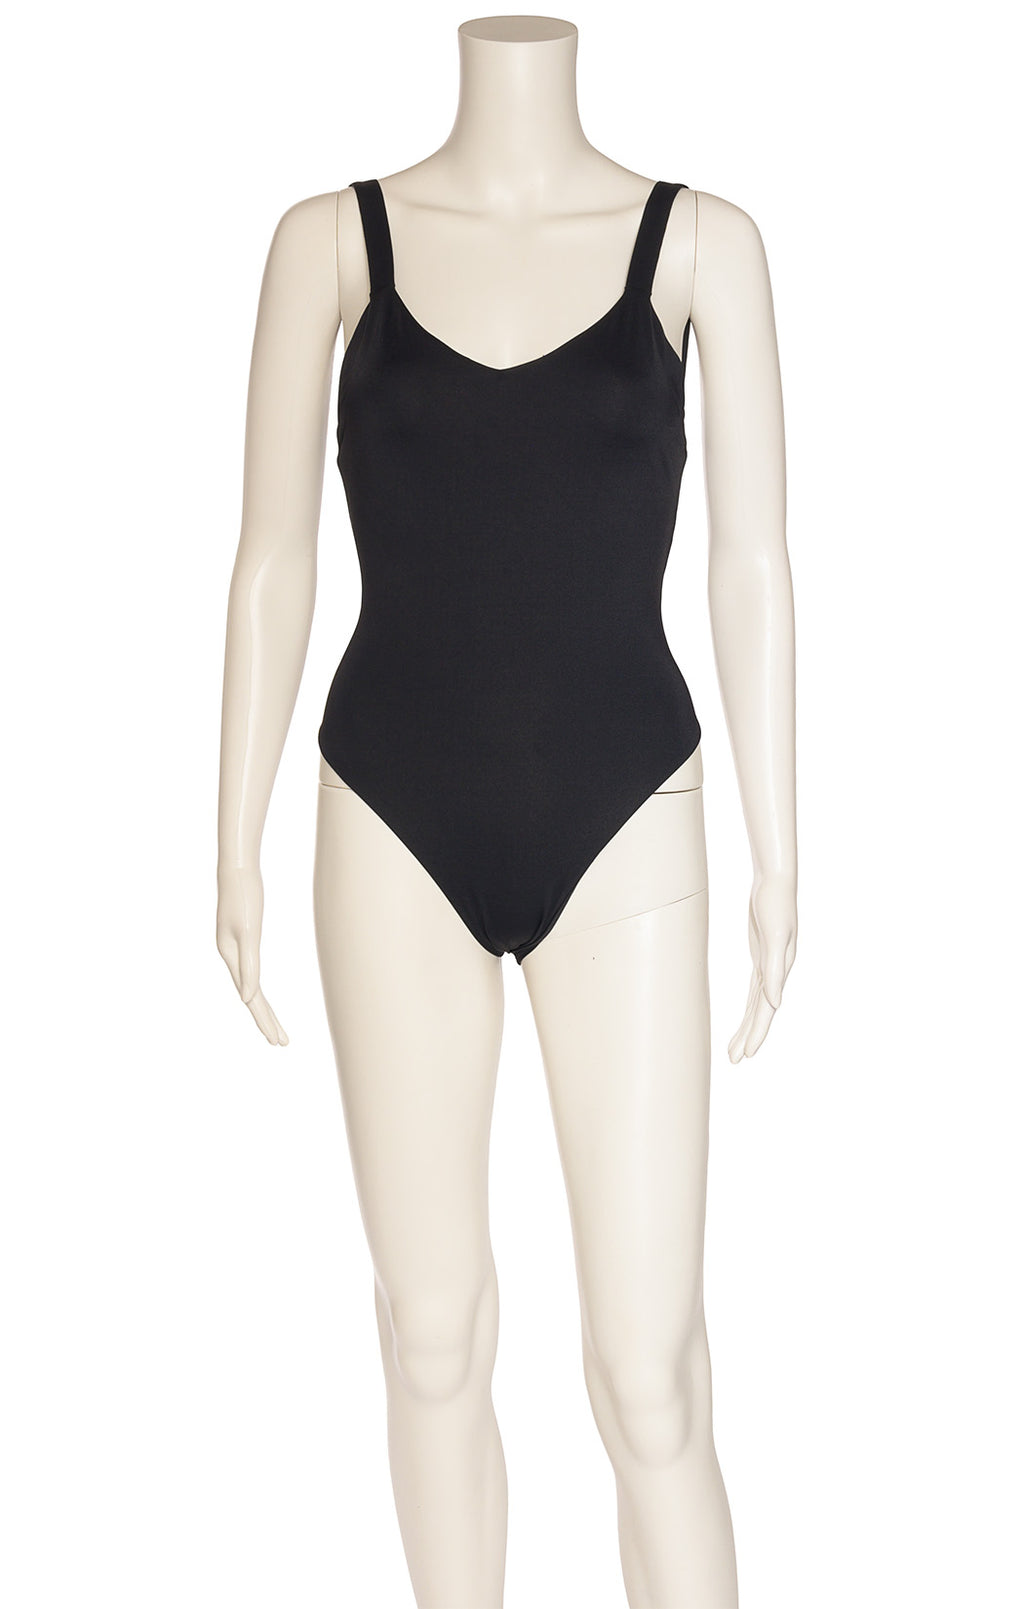 Front view of VITAMIN A One piece bathing suit Size: Large